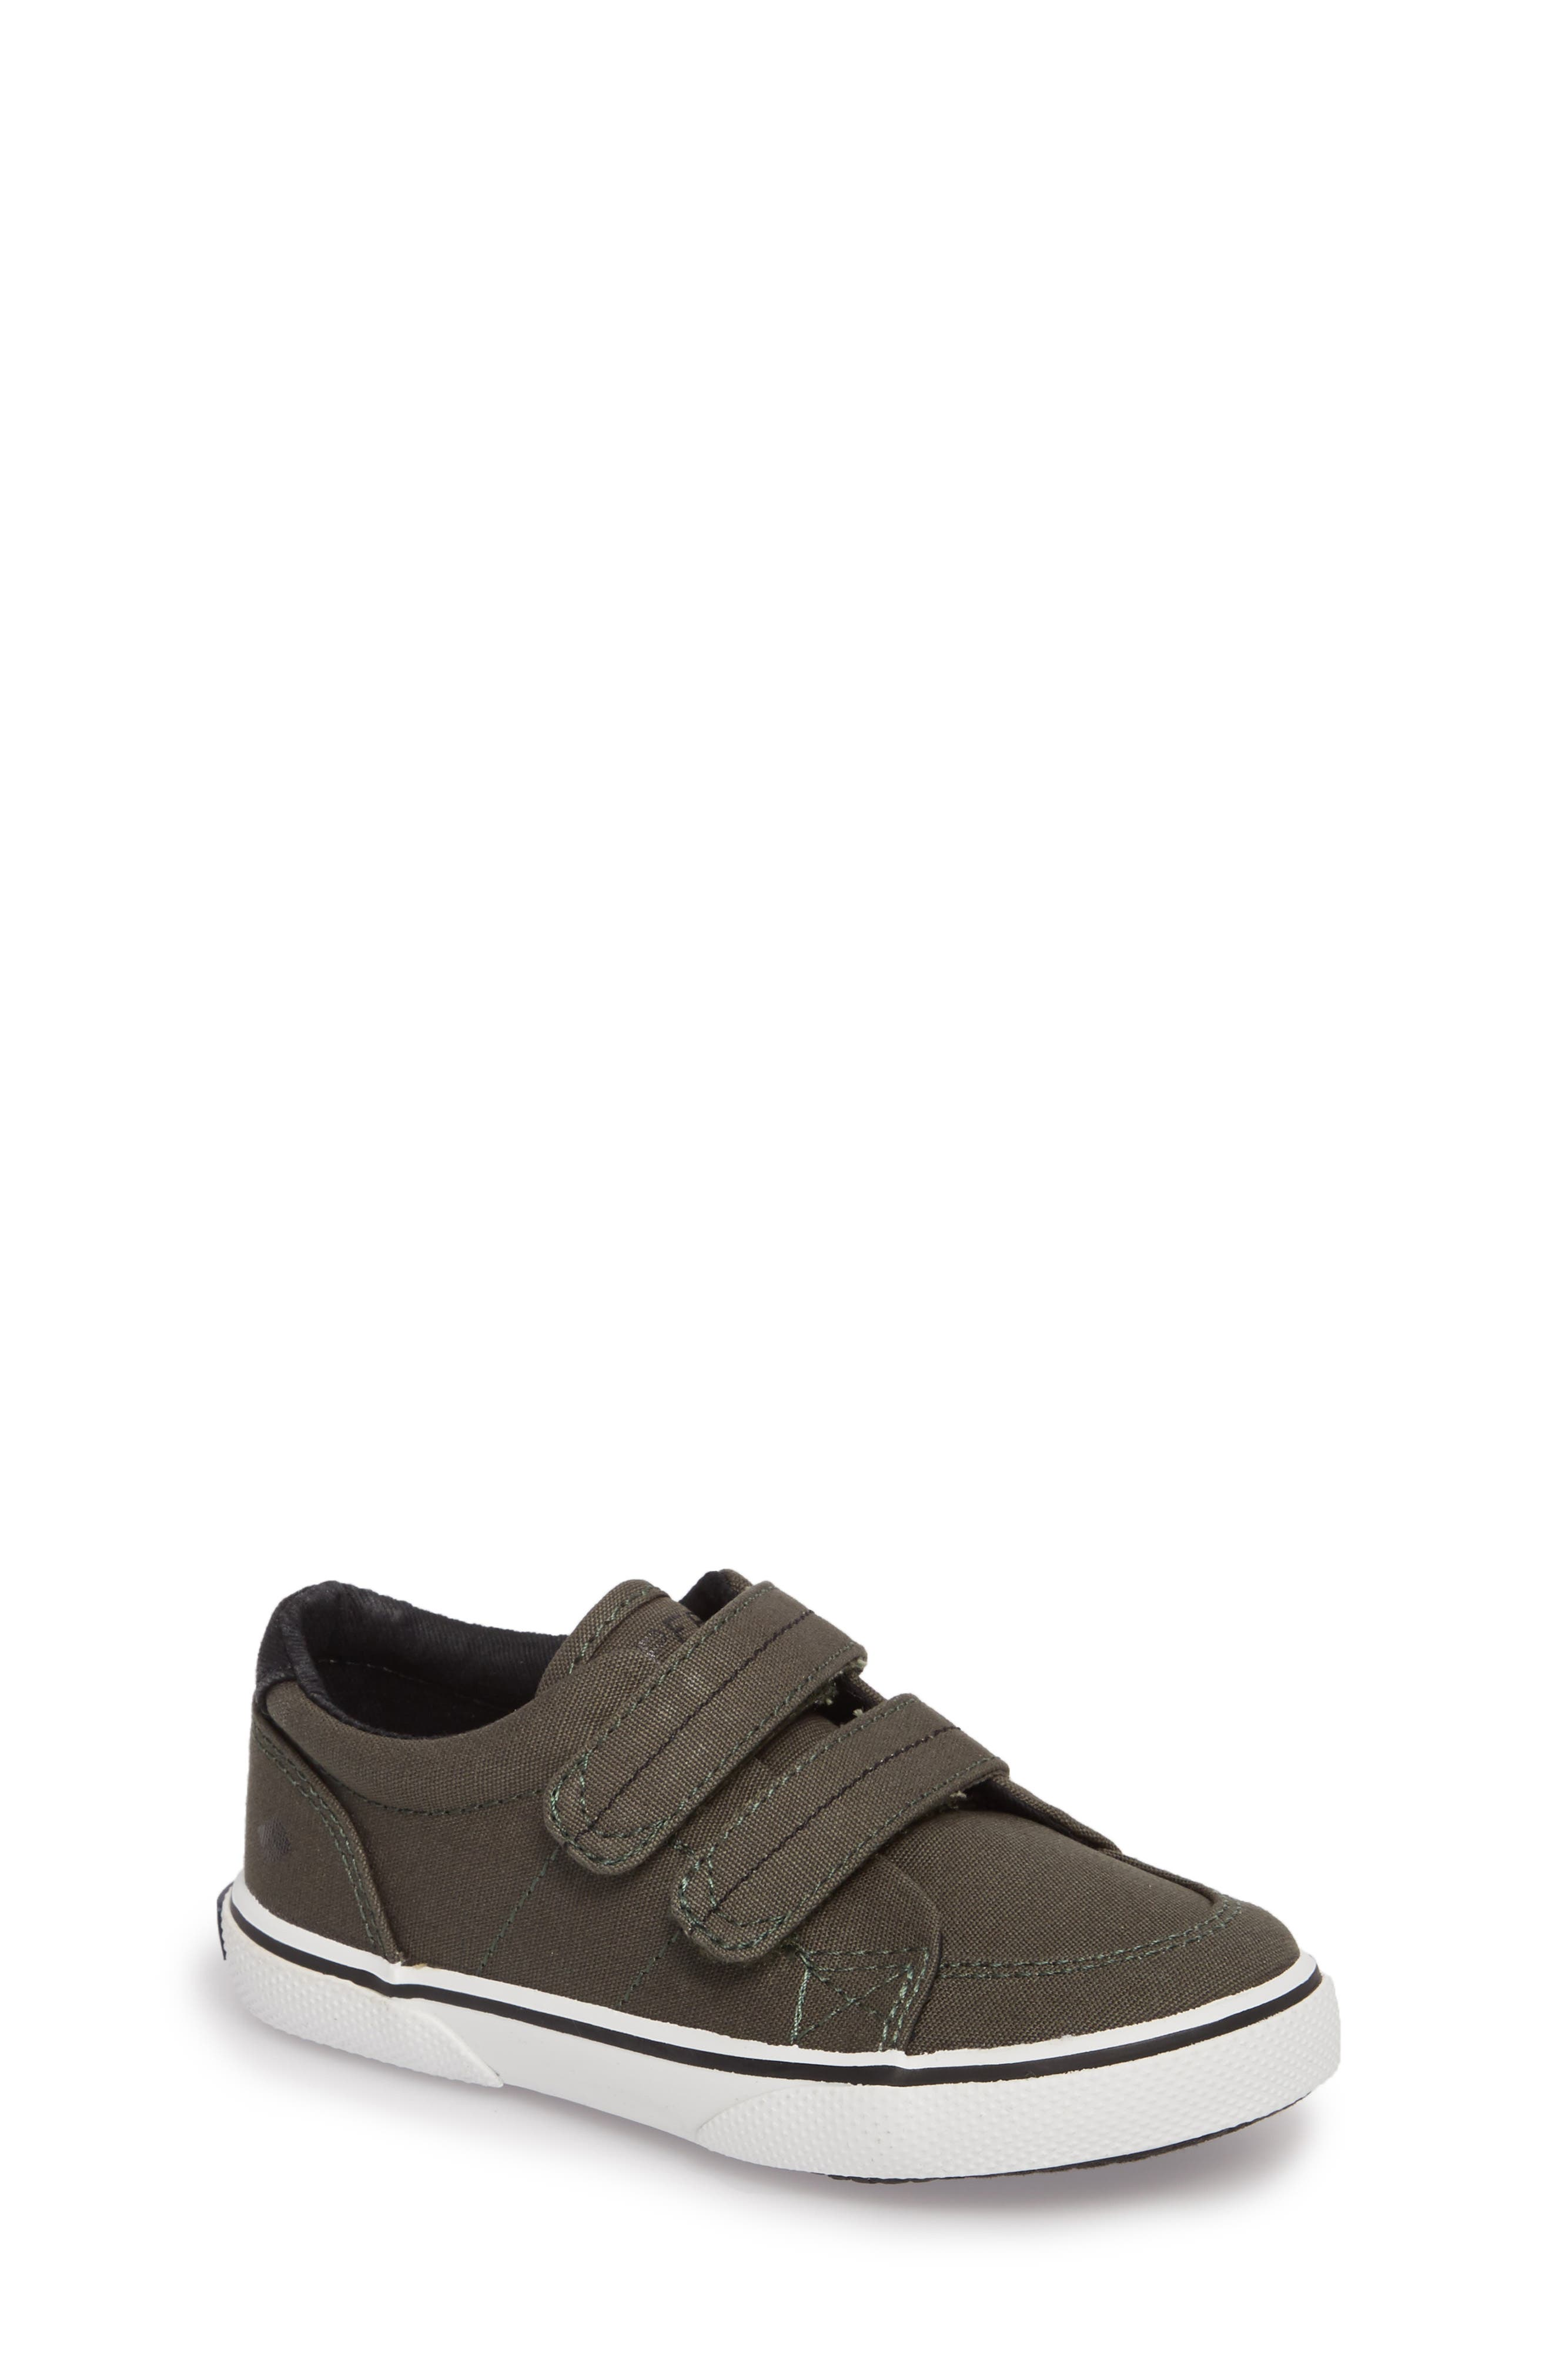 Sperry Top-Sider<sup>®</sup> Kids 'Halyard' Sneaker,                             Main thumbnail 1, color,                             Olive